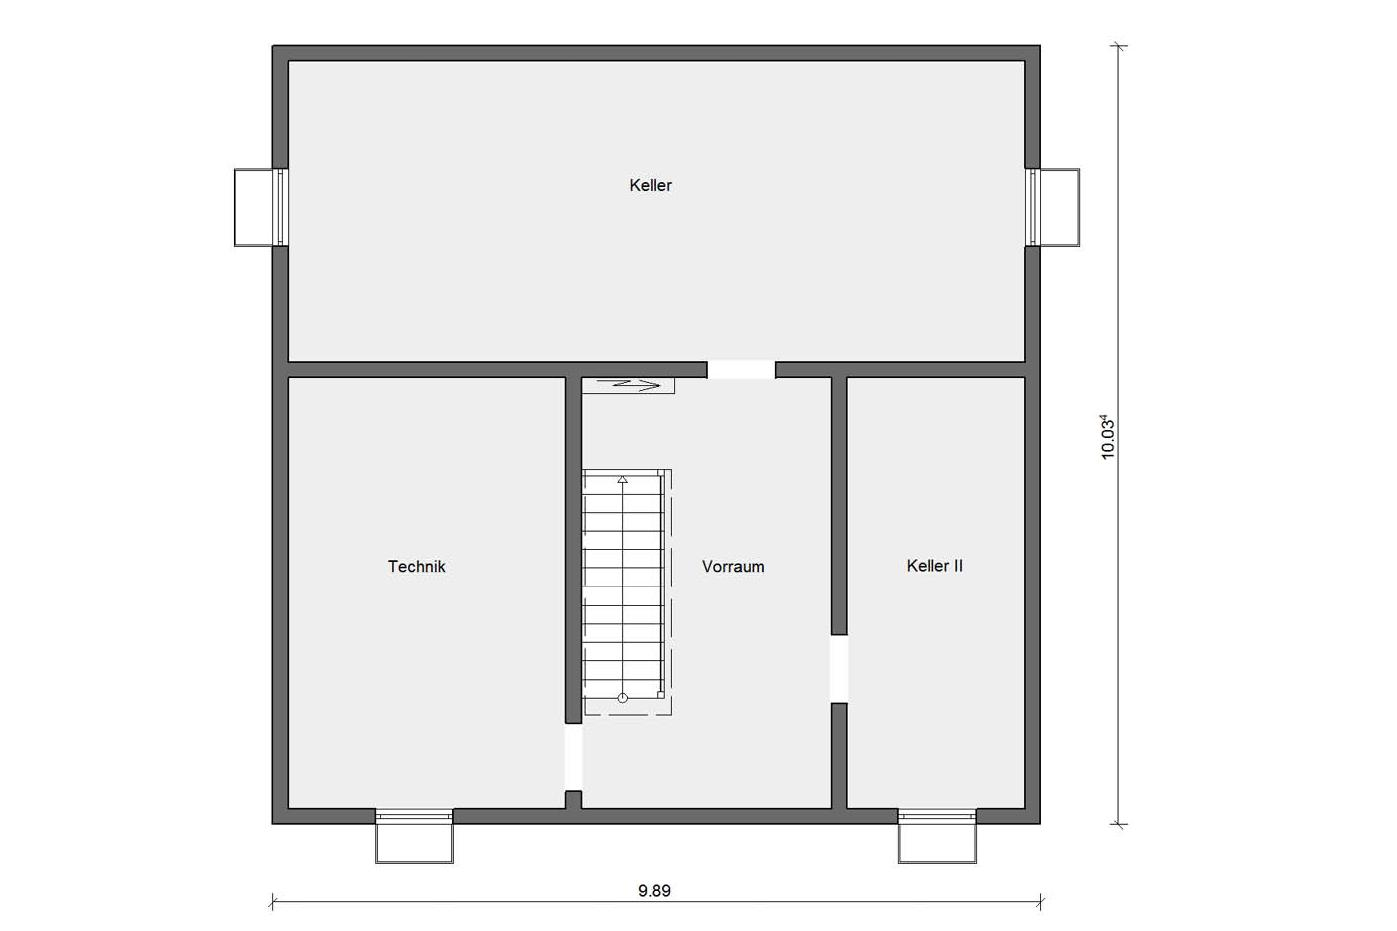 Ground floor basement M-15 178.1 Prefabricated house with granny flat